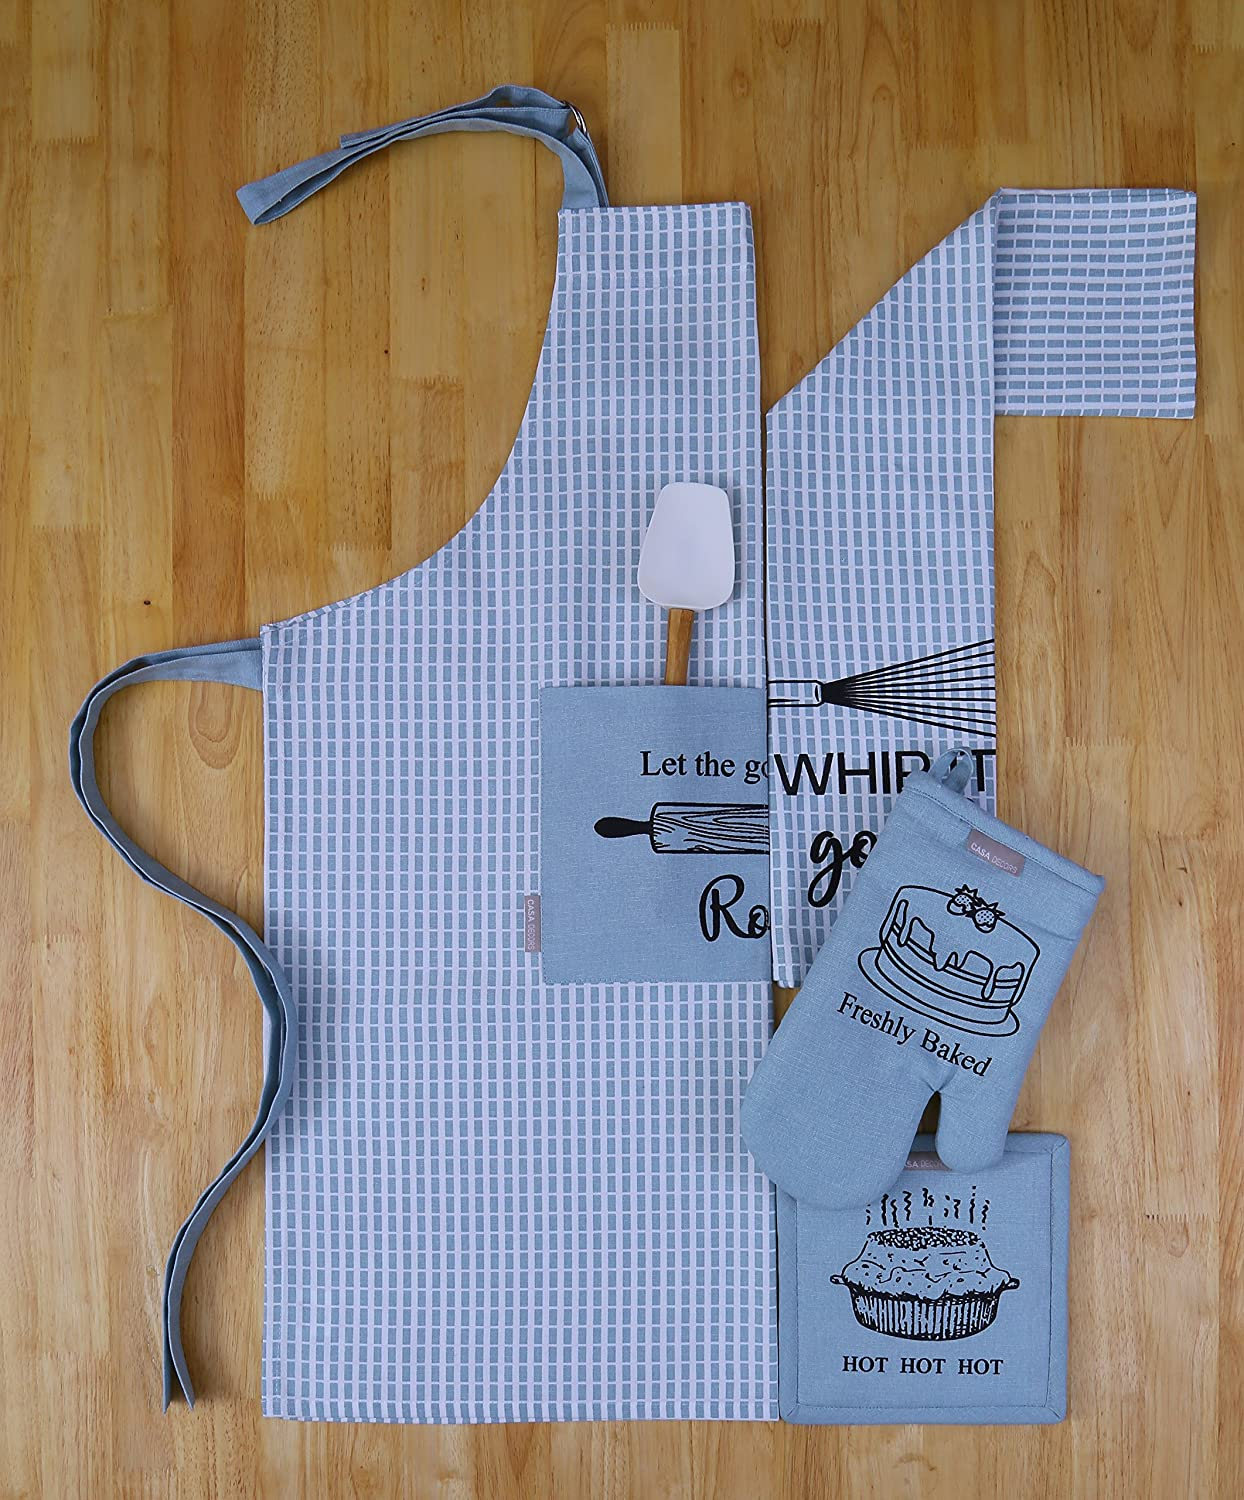 Set of Apron, Oven Mitt, Pot Holder, Kitchen Towel in a Baking Fun Design, Made of 100% Cotton, Eco-Friendly & Safe, Value Pack and Ideal Gift Set, Kitchen Linen Set By CASA DECORS